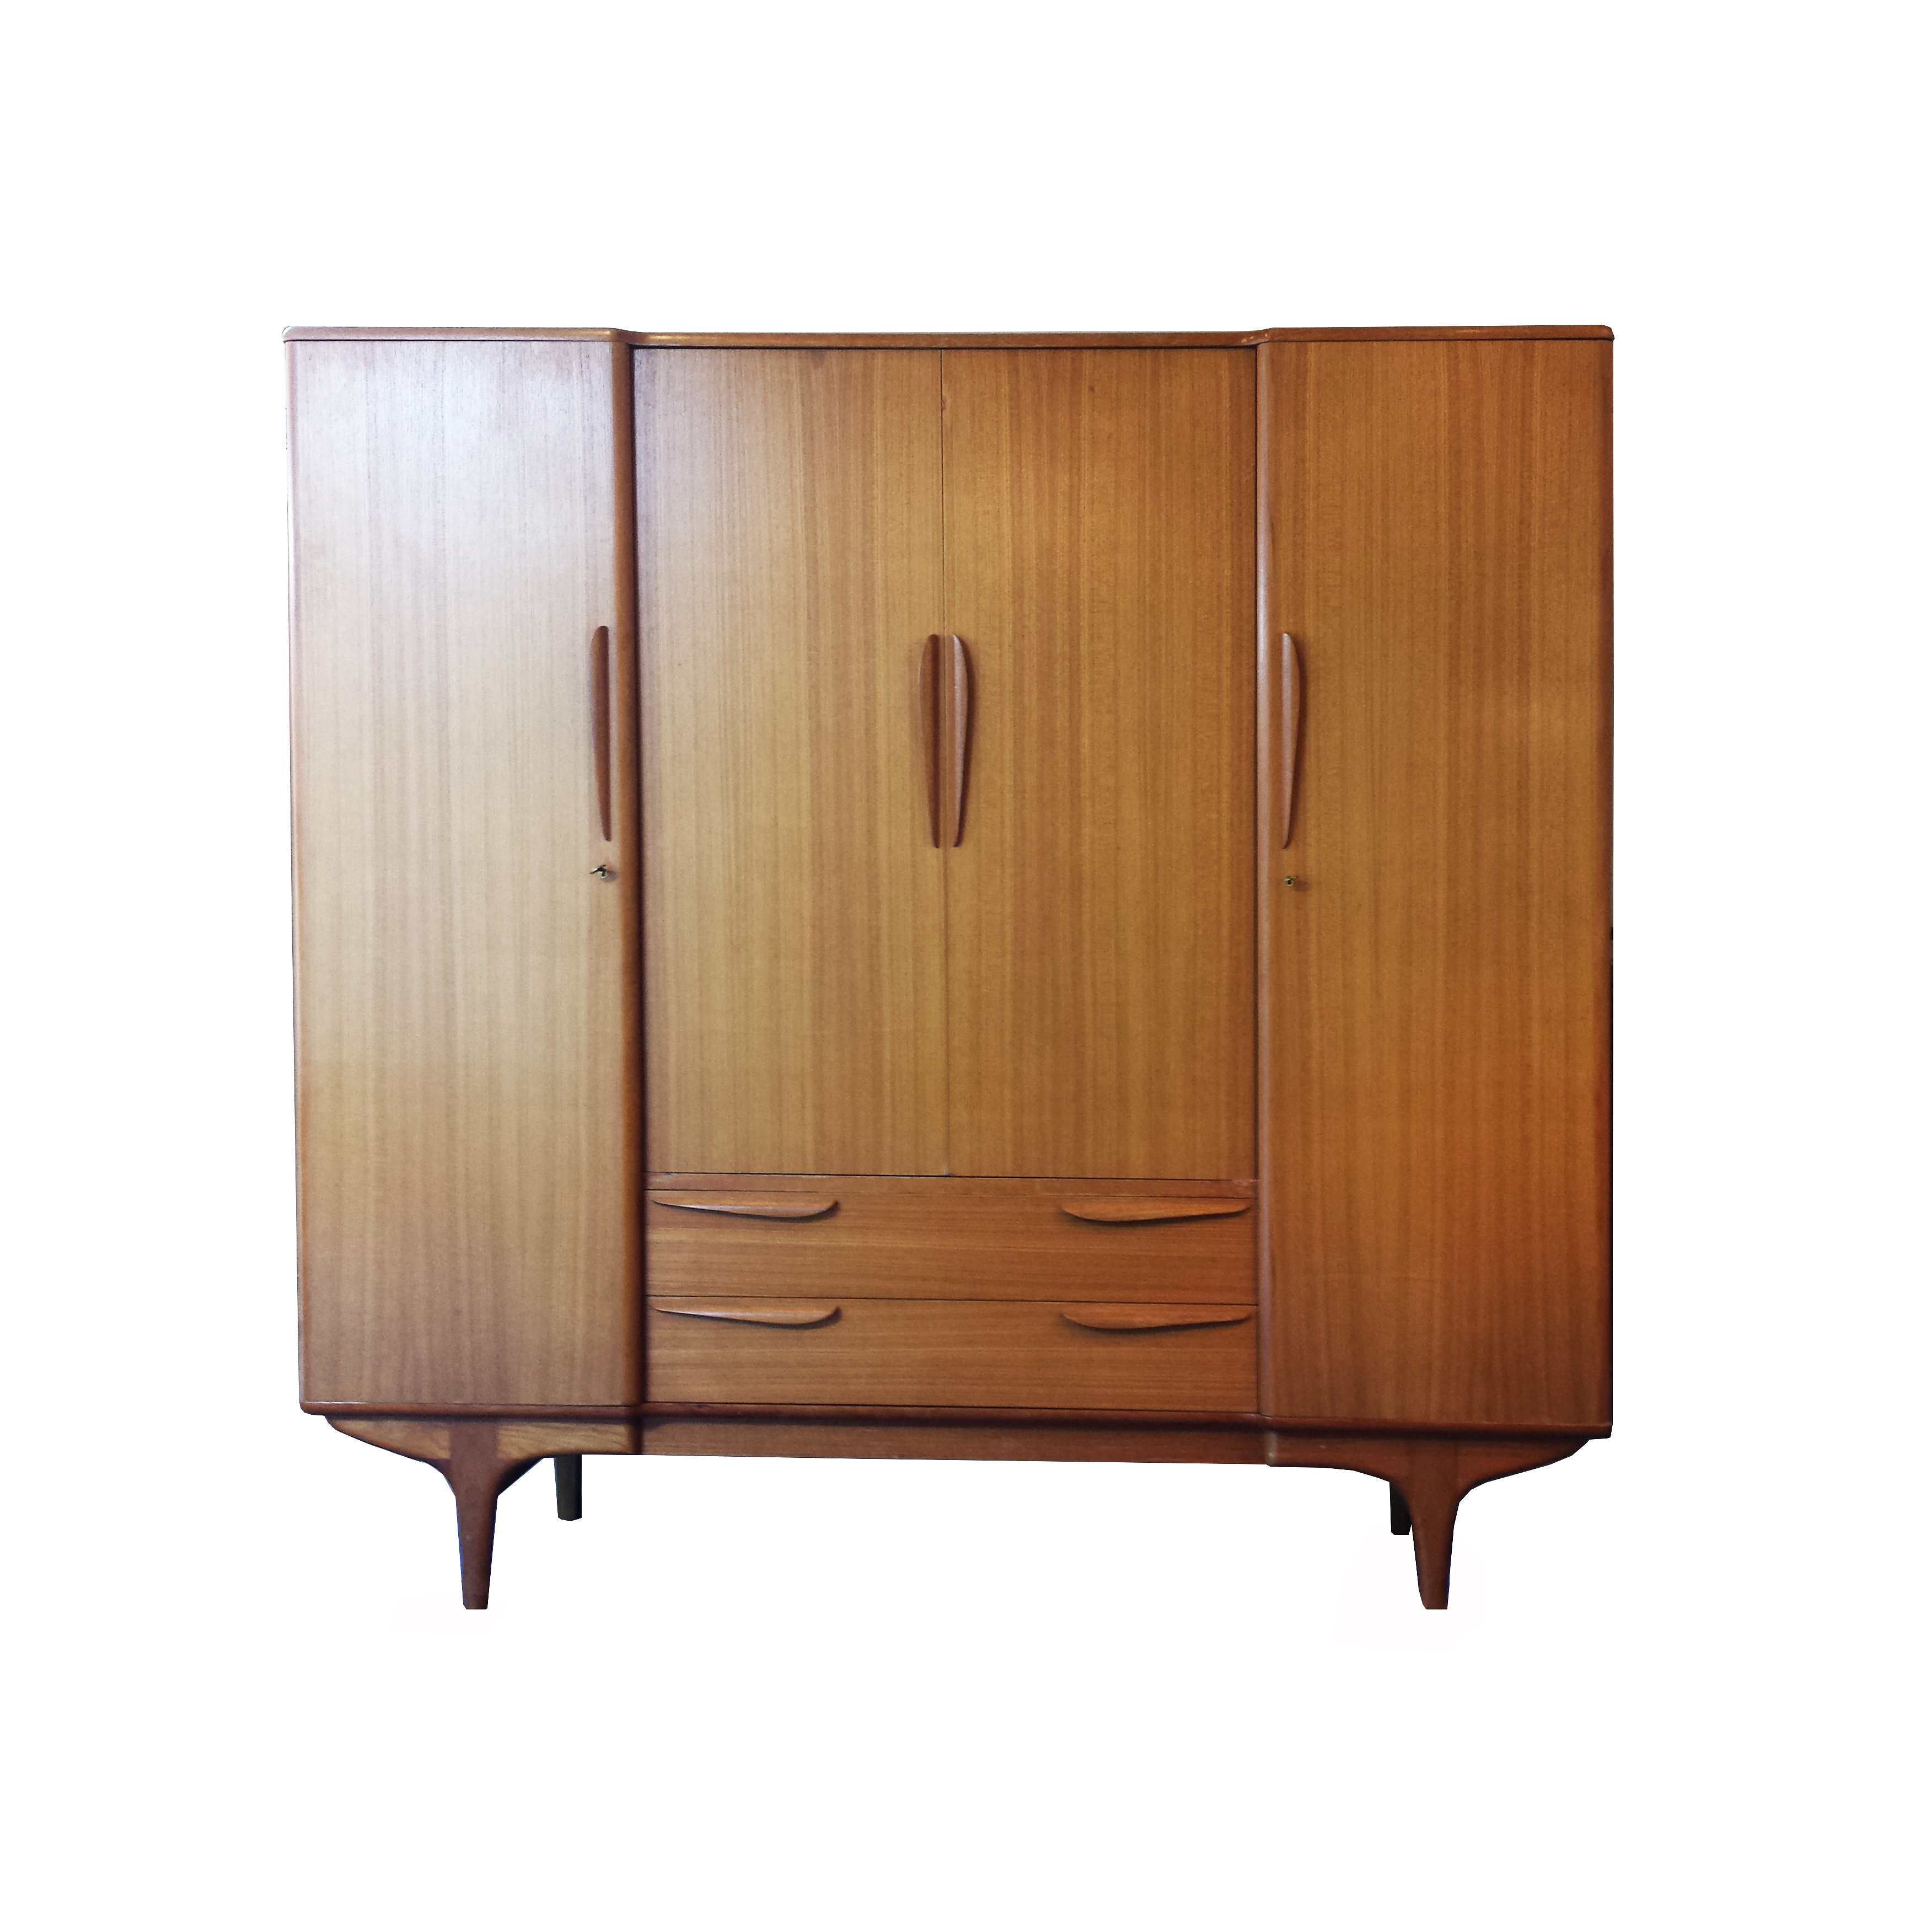 Bagatelle Gallery Mid Century Modern Furniture Austin Tx  # Meuble Tv Armoire